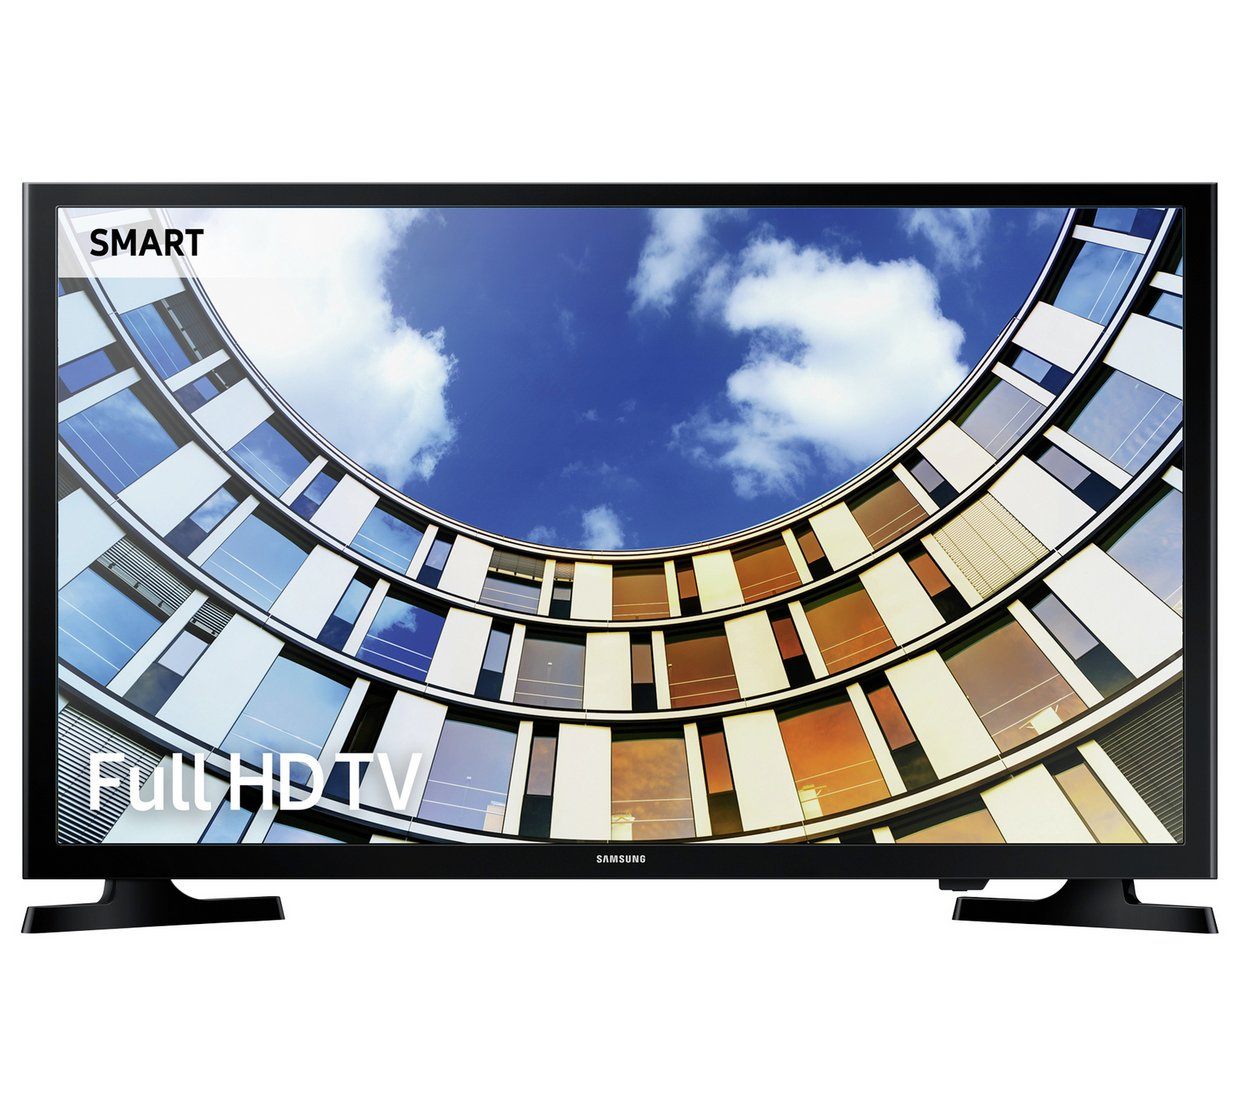 Samsung UE49M5000 49 Inch Full HD TV With Freeview HD